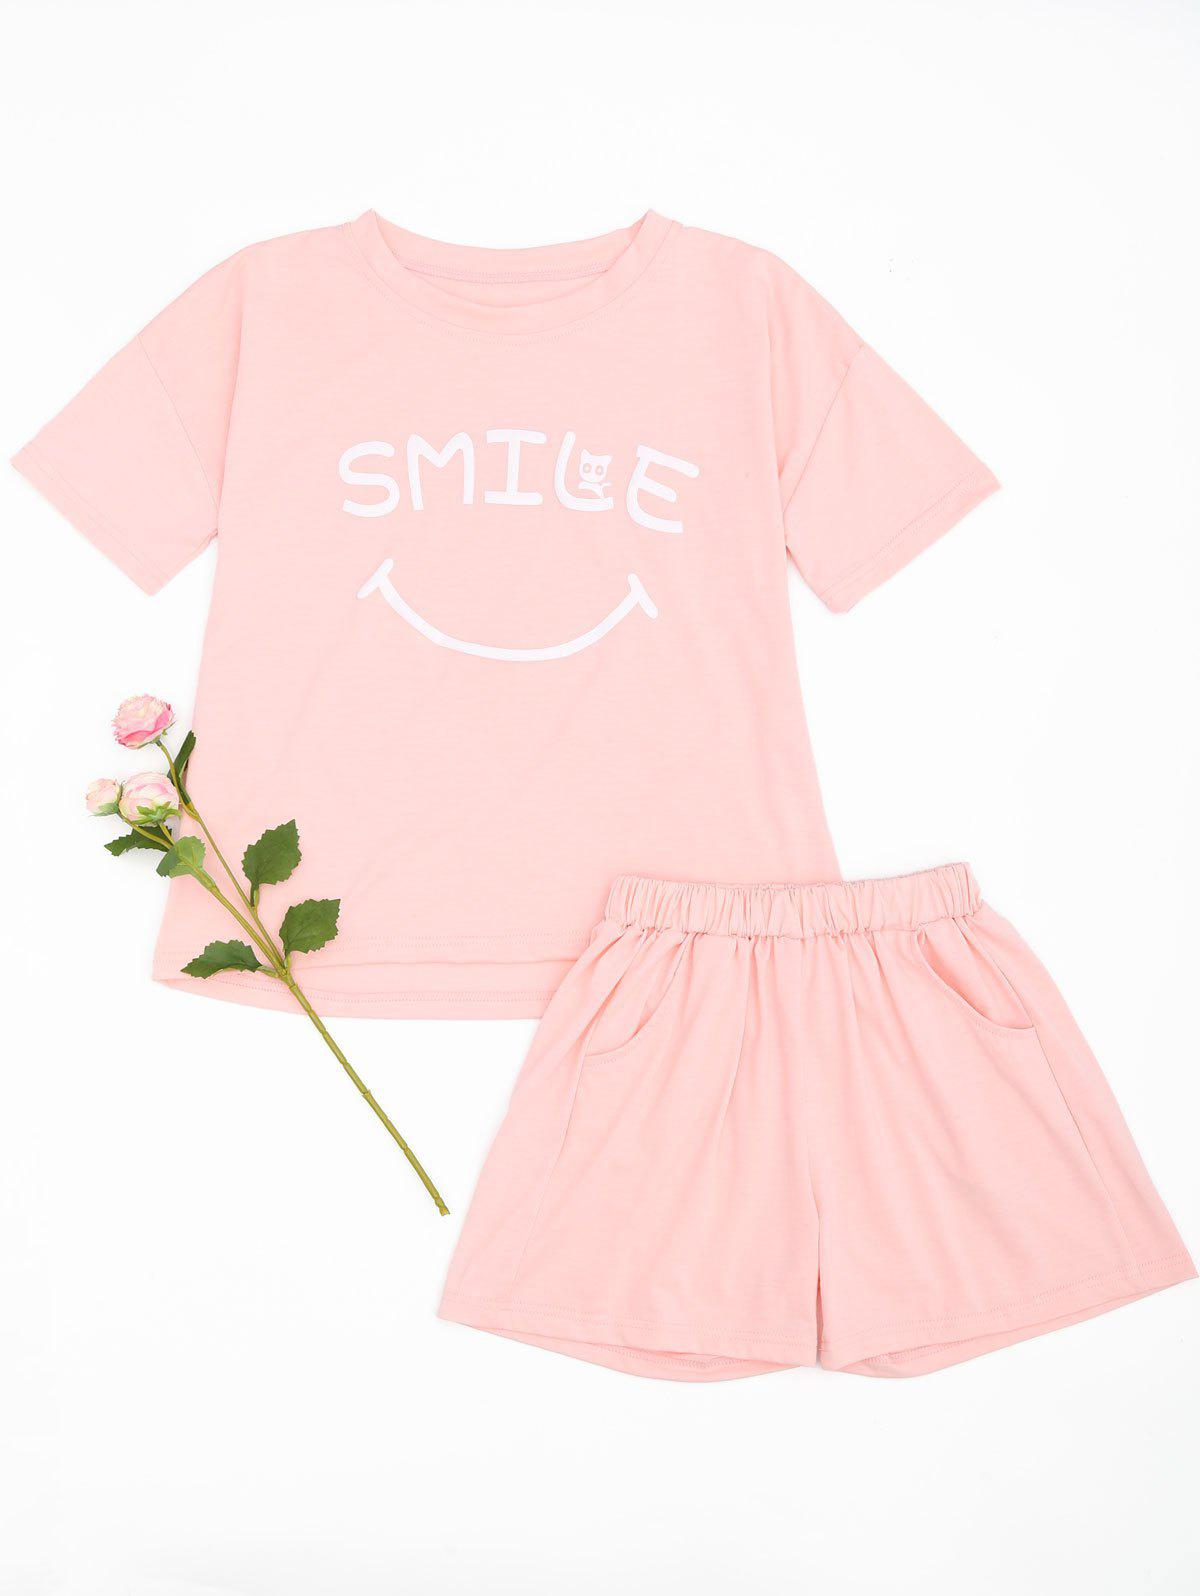 Cute Smile Top with Shorts Loungewear